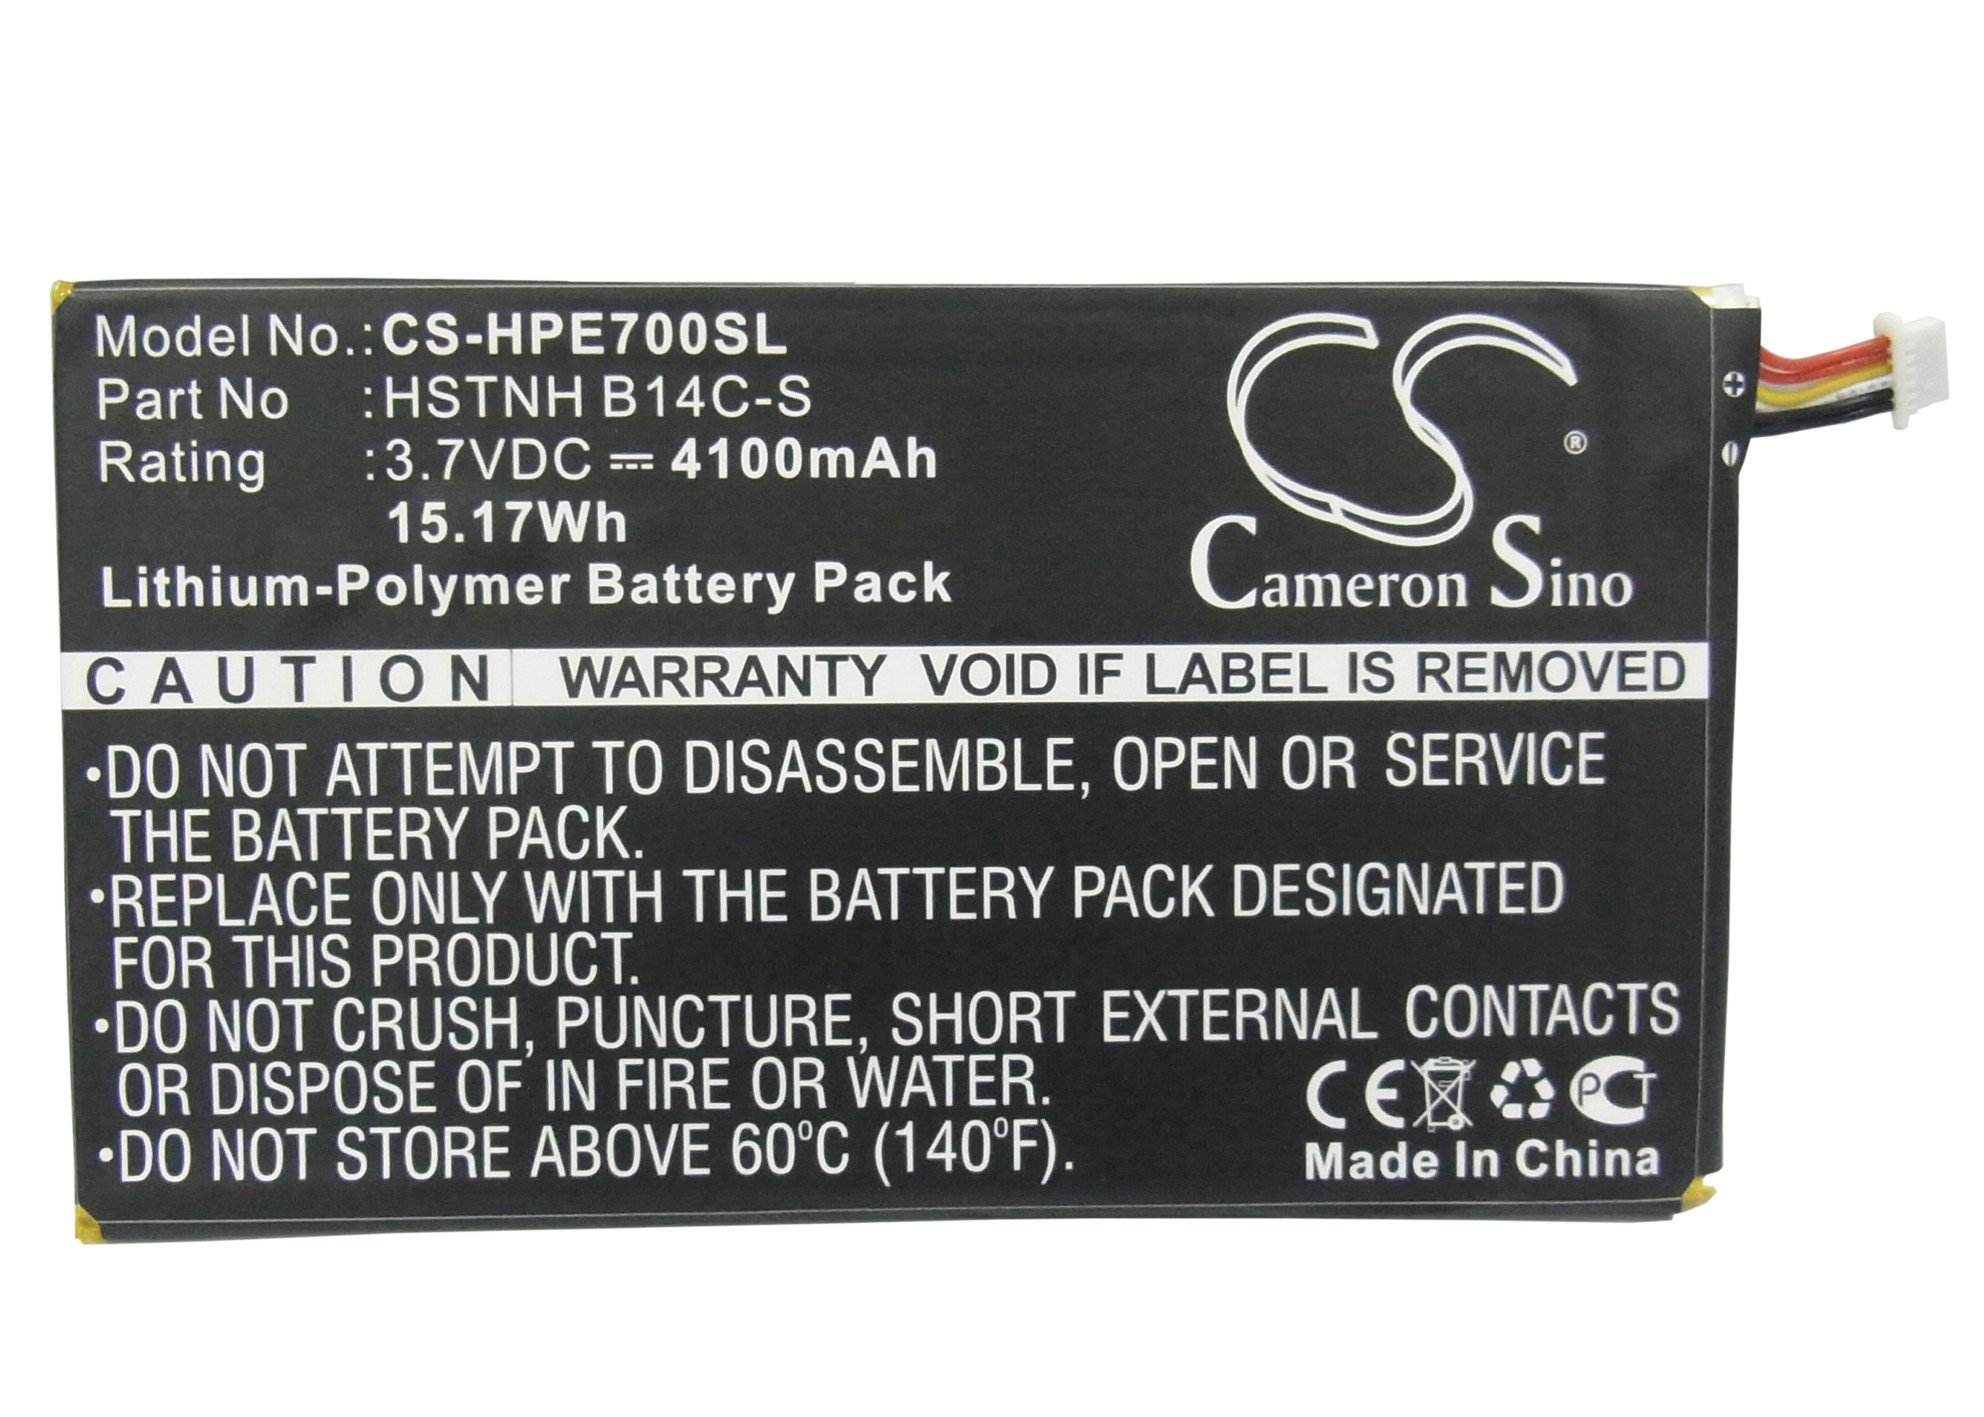 Cameron Sino 4100mAh Li-Polymer High-Capacity Replacement Batteries for HP Tablet 7 1800, Slate 7 1800 Tablet, fits HP 10979176-00, 739691-001, HSTNH B14C-S, WD3870127P